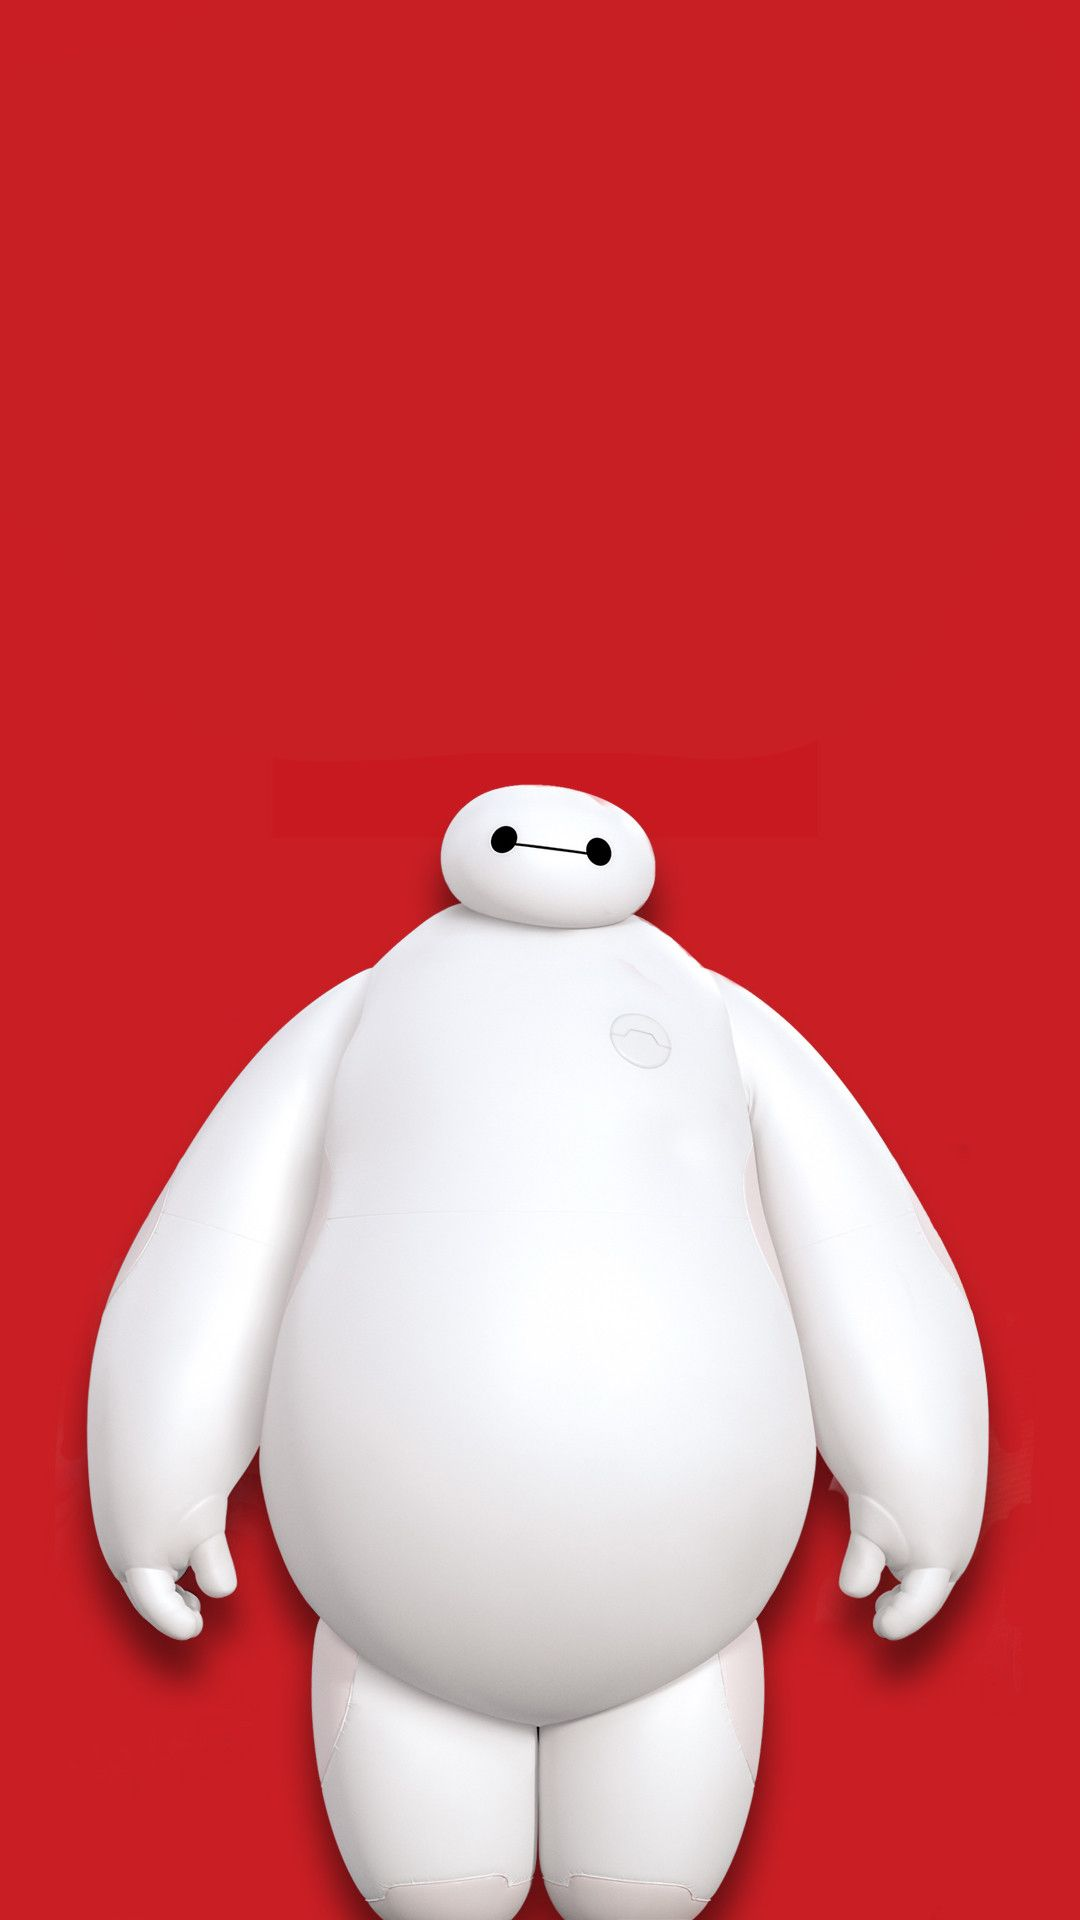 Disney Movie Big Hero 6 (2014) Desktop iPhone Wallpapers ...